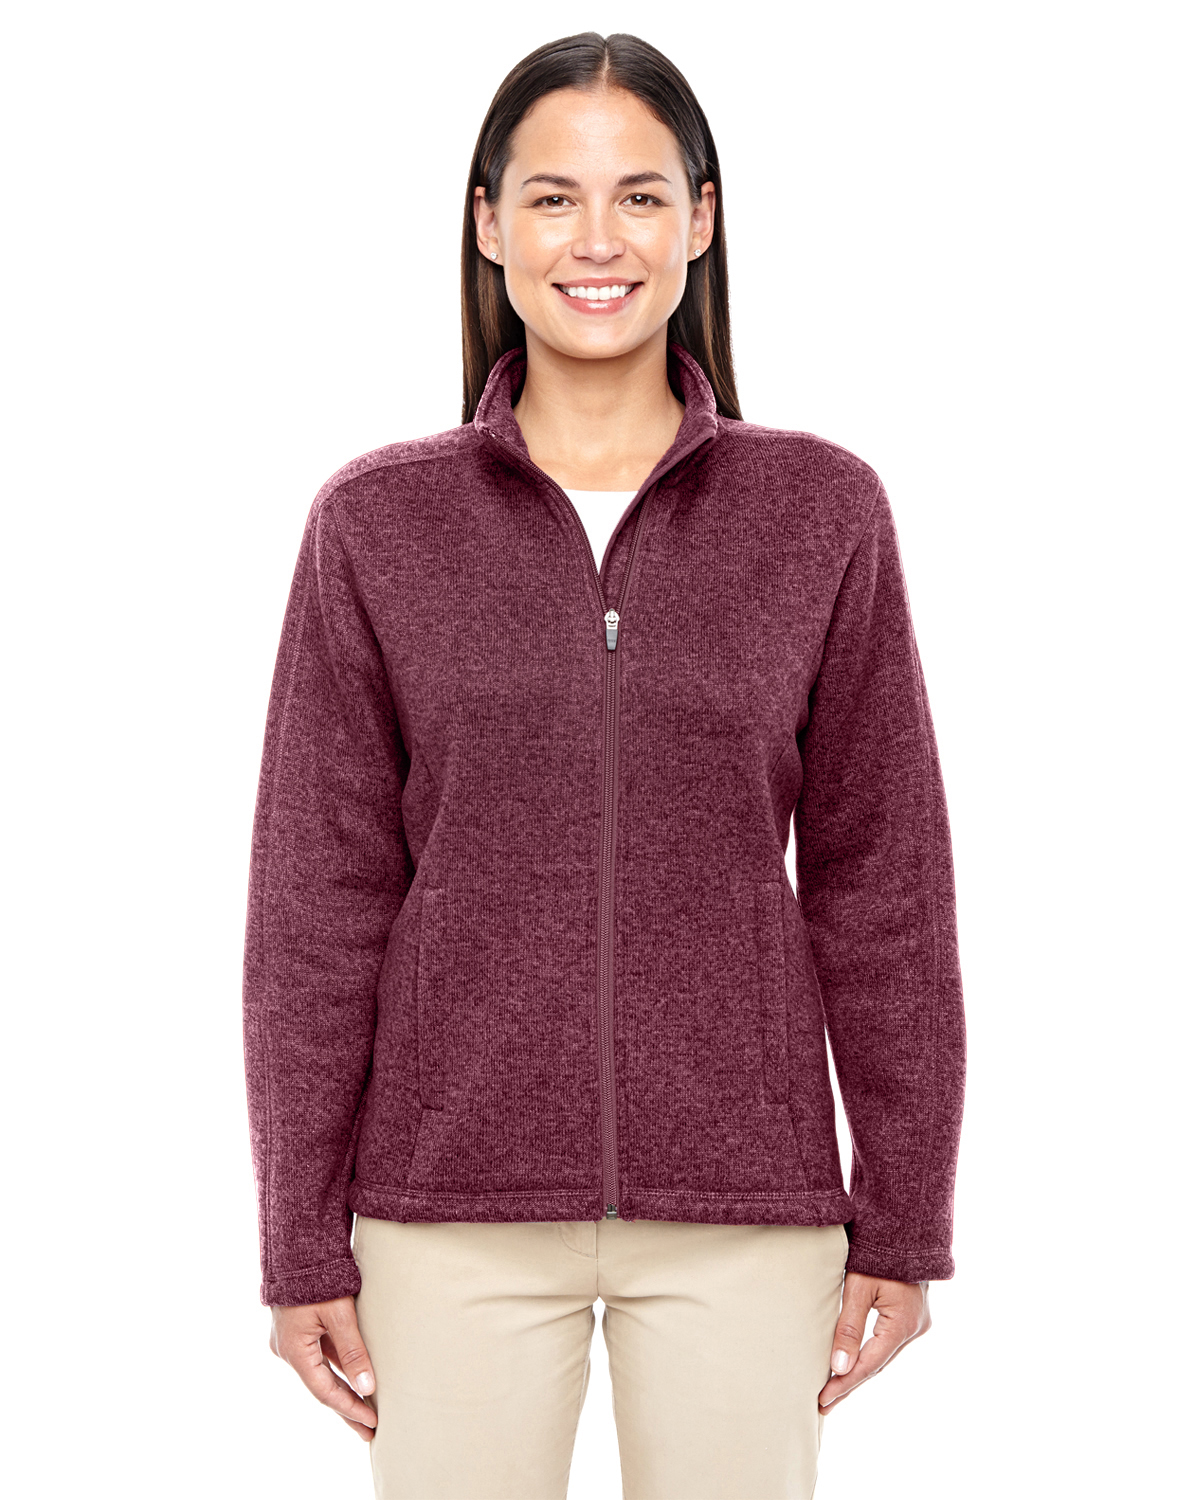 Devon & Jones - DG793W, Ladies' Bristol Full-Zip Sweater Fleece Jacket, Embroidery, Screen Printing - Logo Masters International